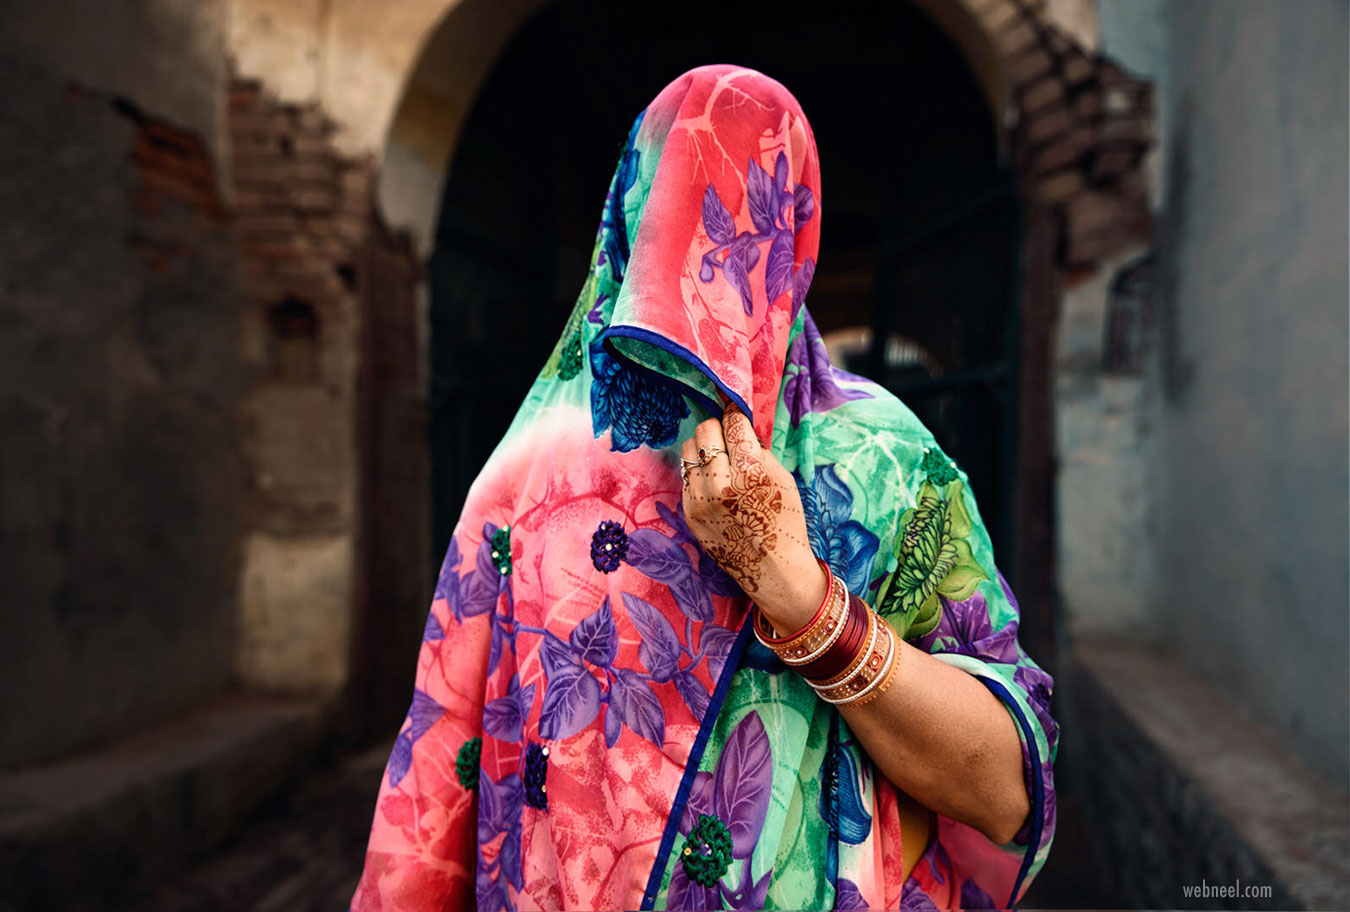 travel photography shy indian woman saree by sefa yamak